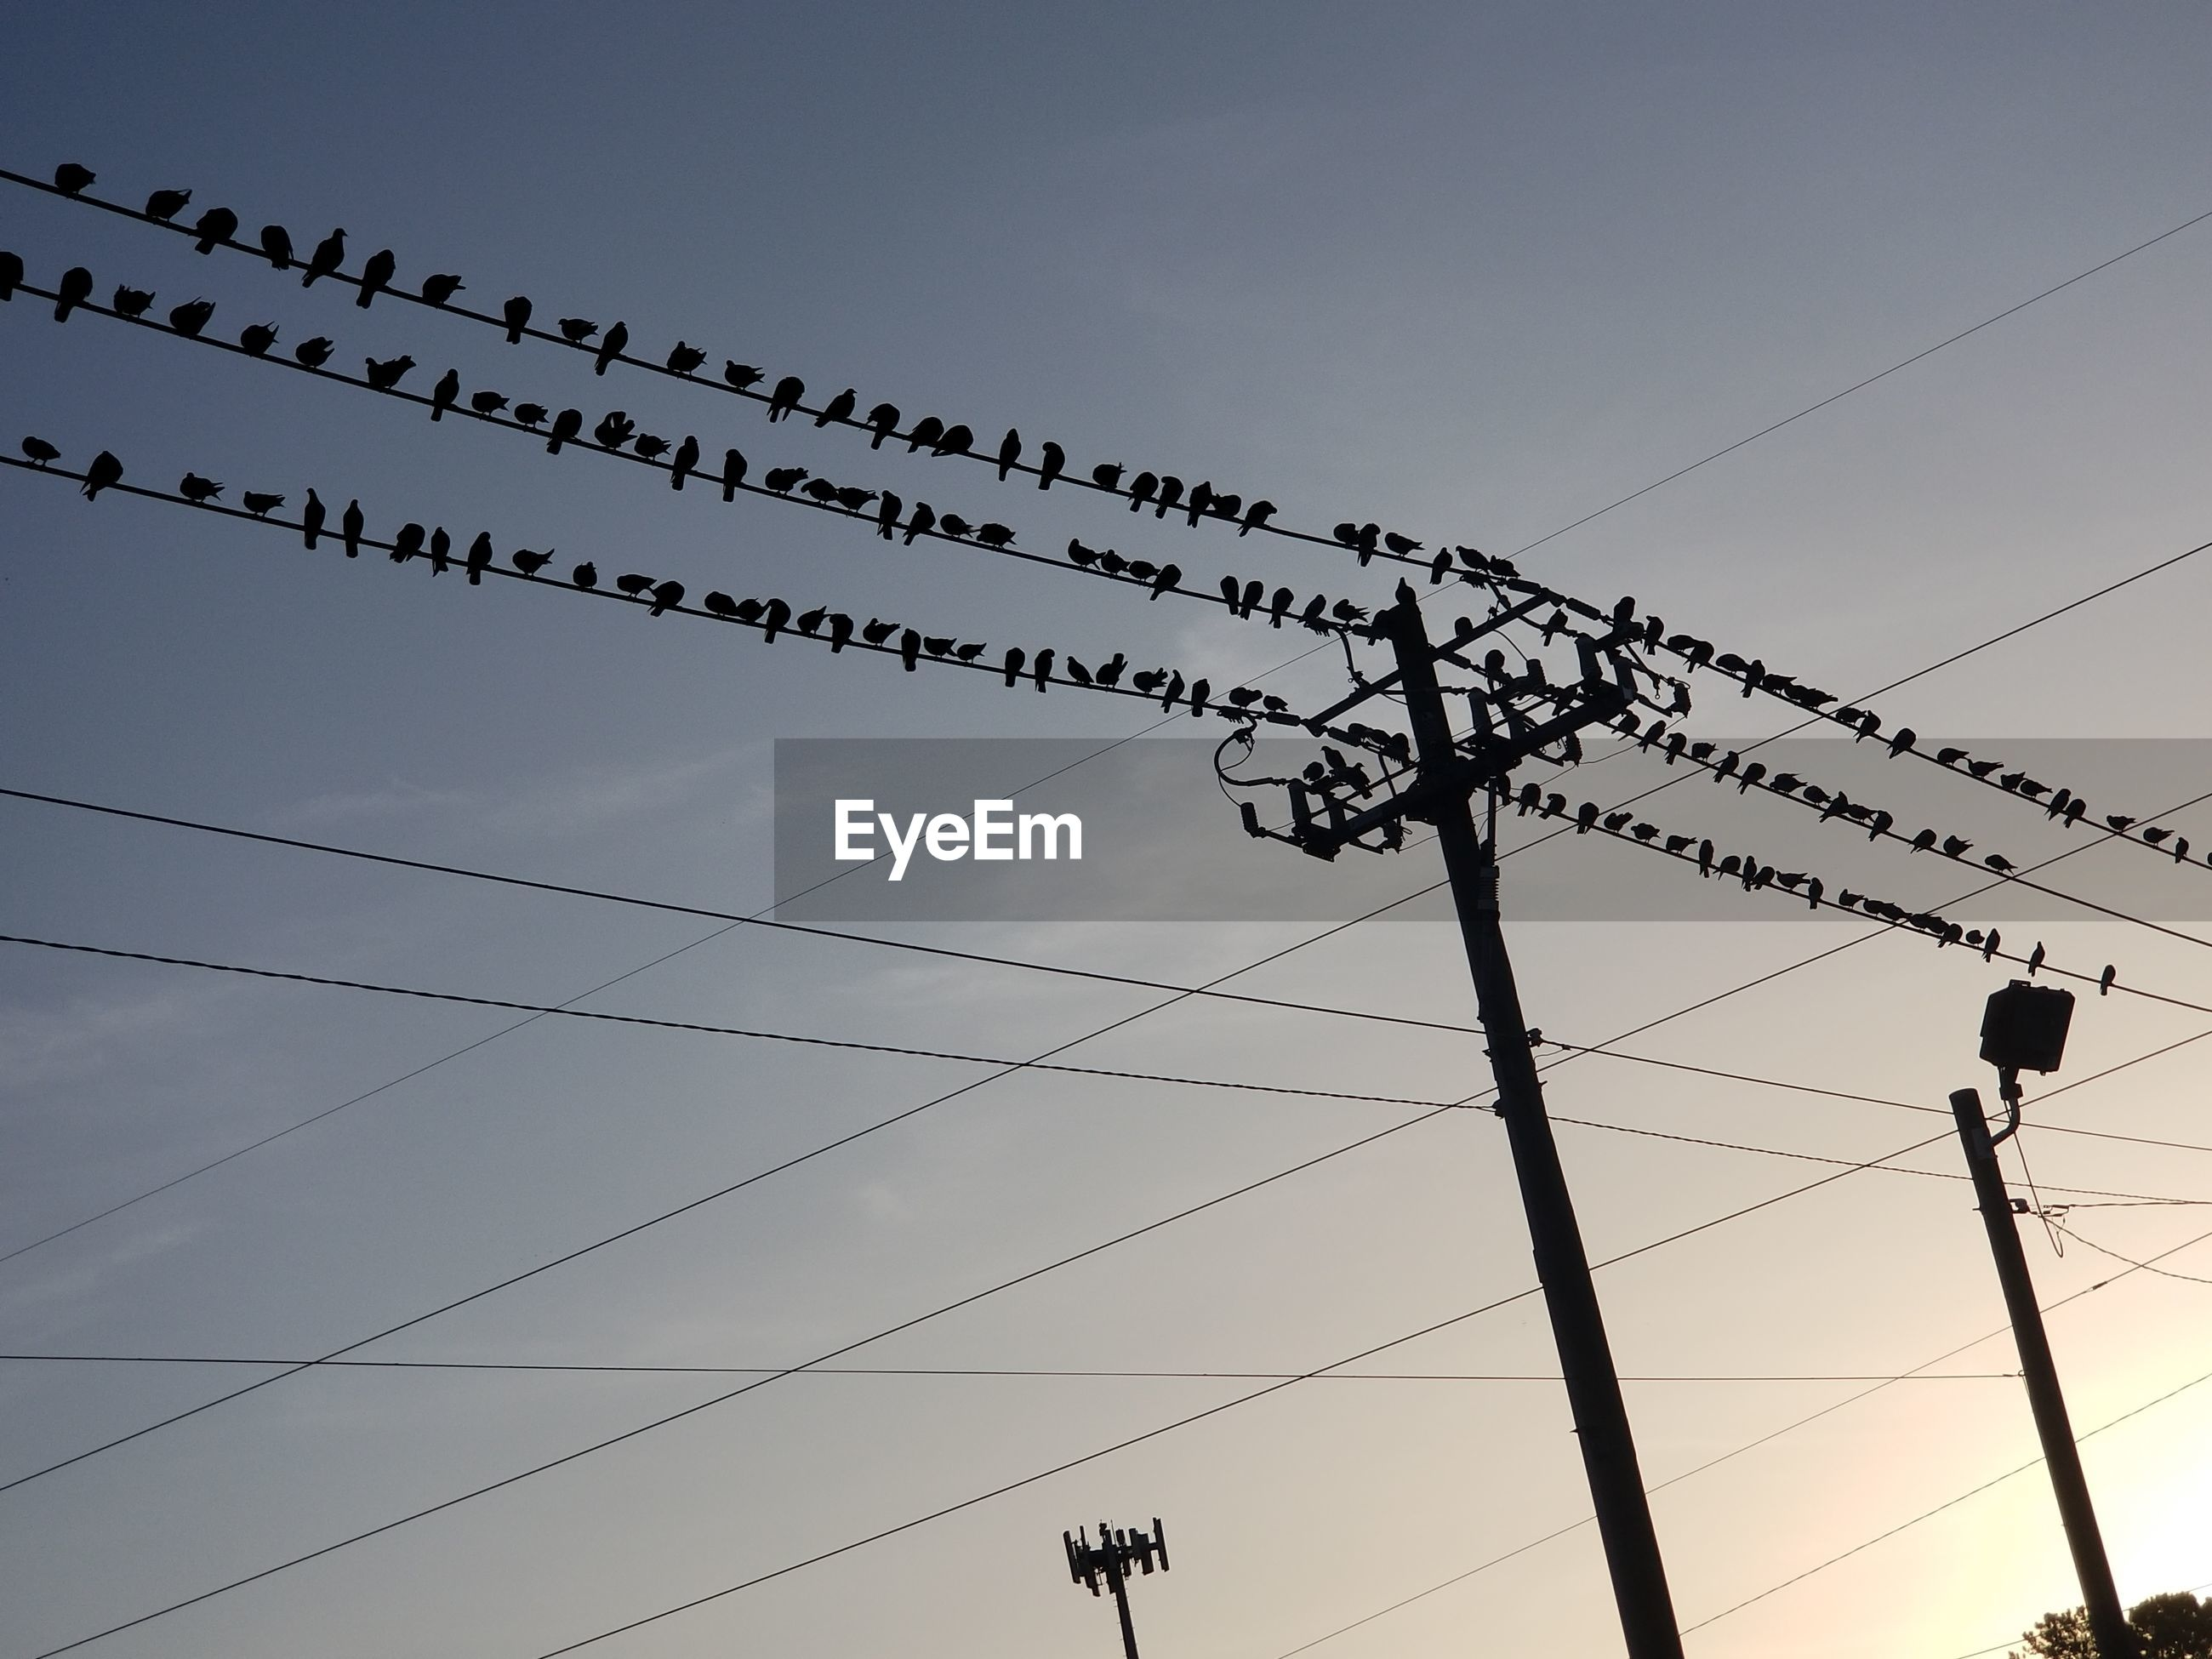 LOW ANGLE VIEW OF BIRDS ON POWER LINES